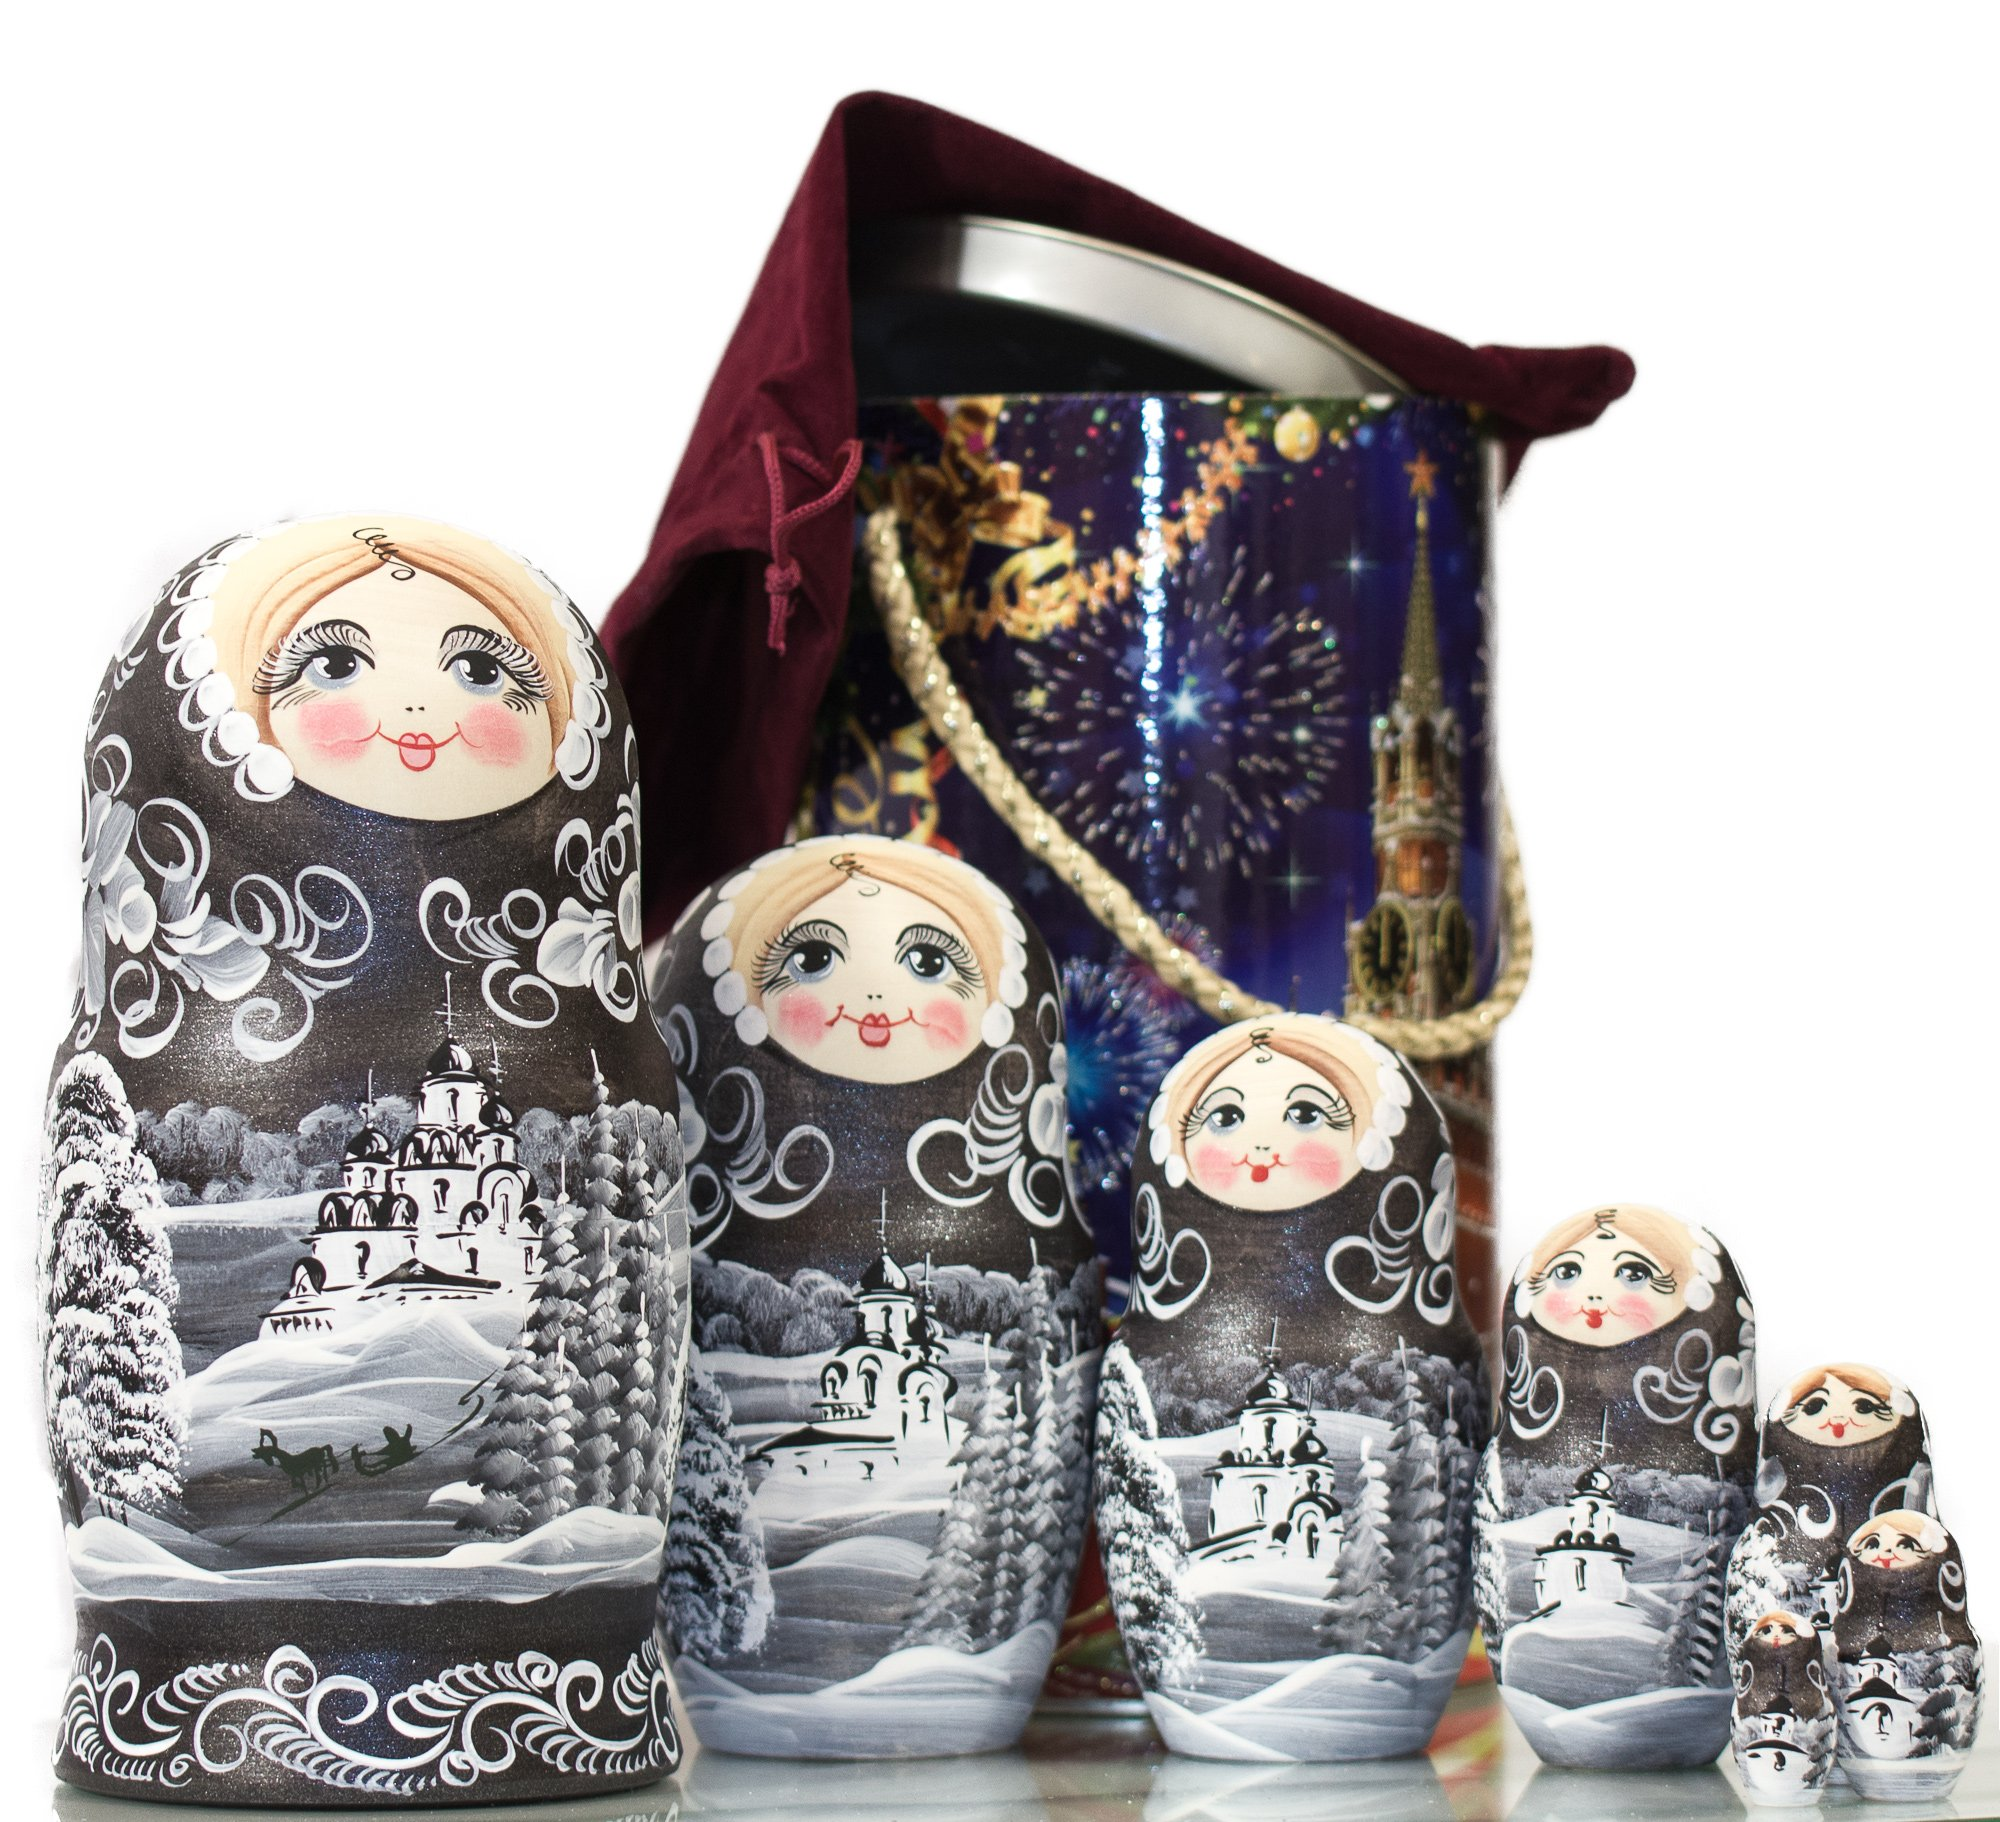 Russian Nesting Doll - ''Winter`s Tale'' - Hand Painted in Russia - MOSCOW KREMLIN GIFT BOX - Wooden Decoration Gift Doll - Traditional Matryoshka Babushka (8`` (7 dolls in 1), Silver Night) by craftsfromrussia (Image #4)